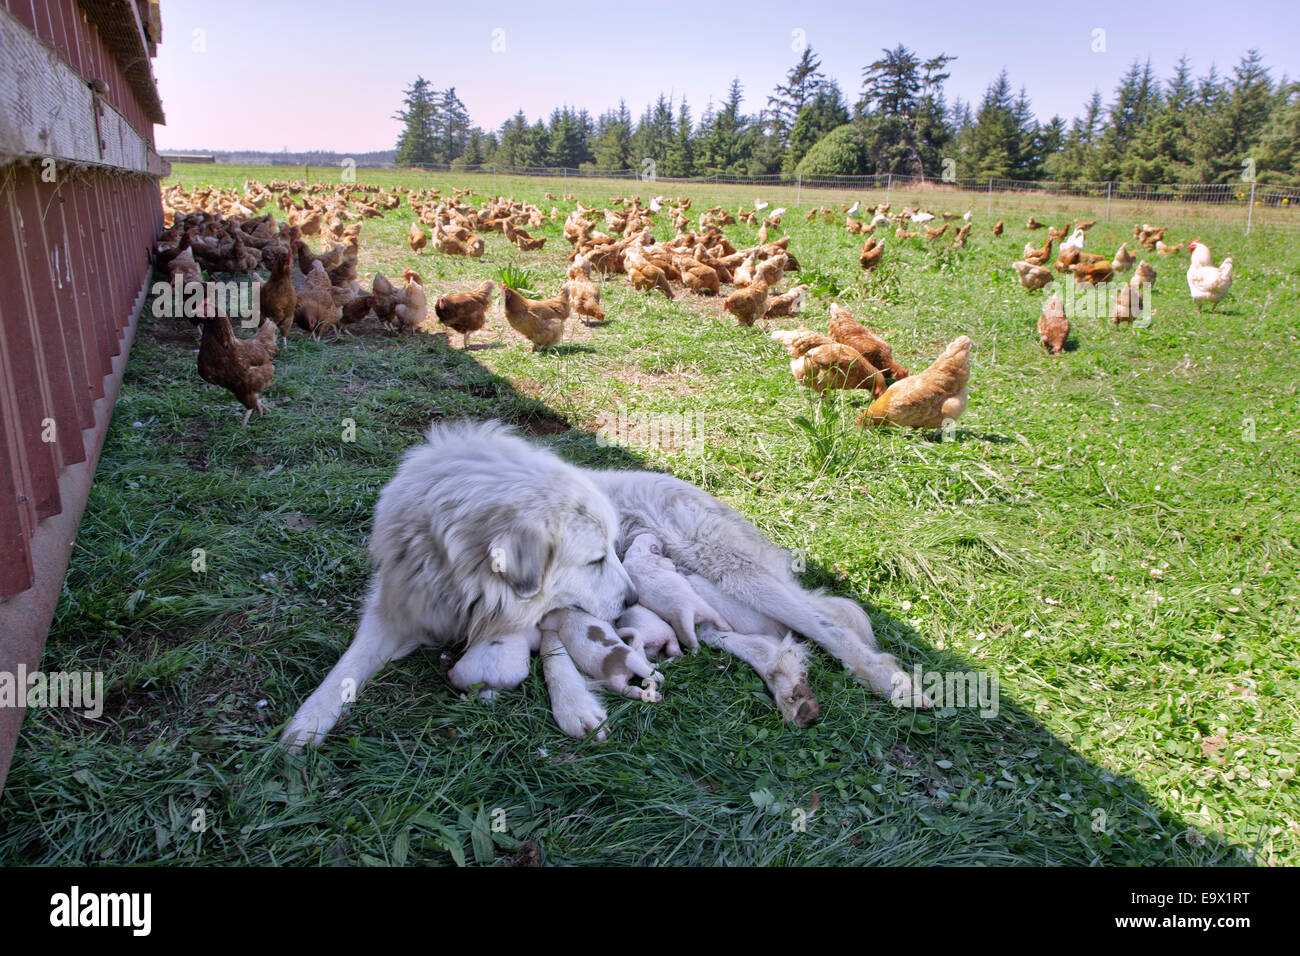 Great Pyrenees mother with one week old puppies, free roaming Eco organic chickens. - Stock Image